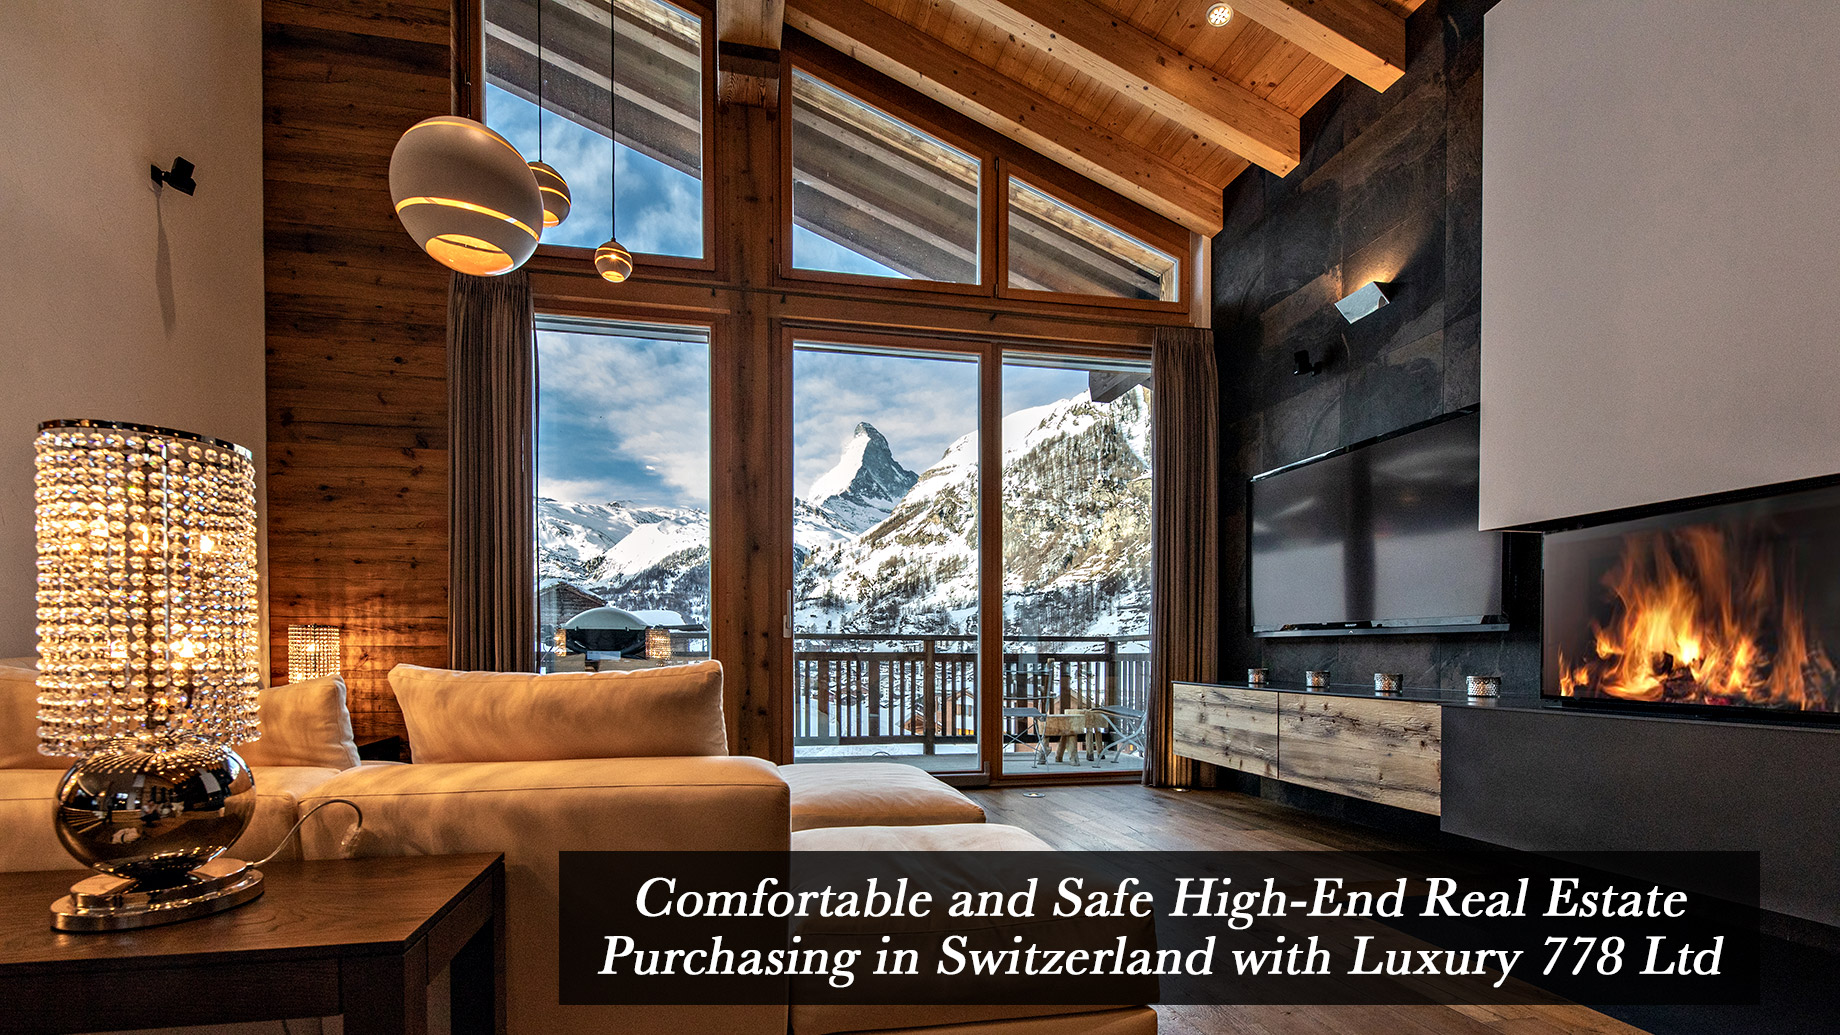 Comfortable and Safe High-End Real Estate Purchasing in Switzerland with Luxury 778 Ltd